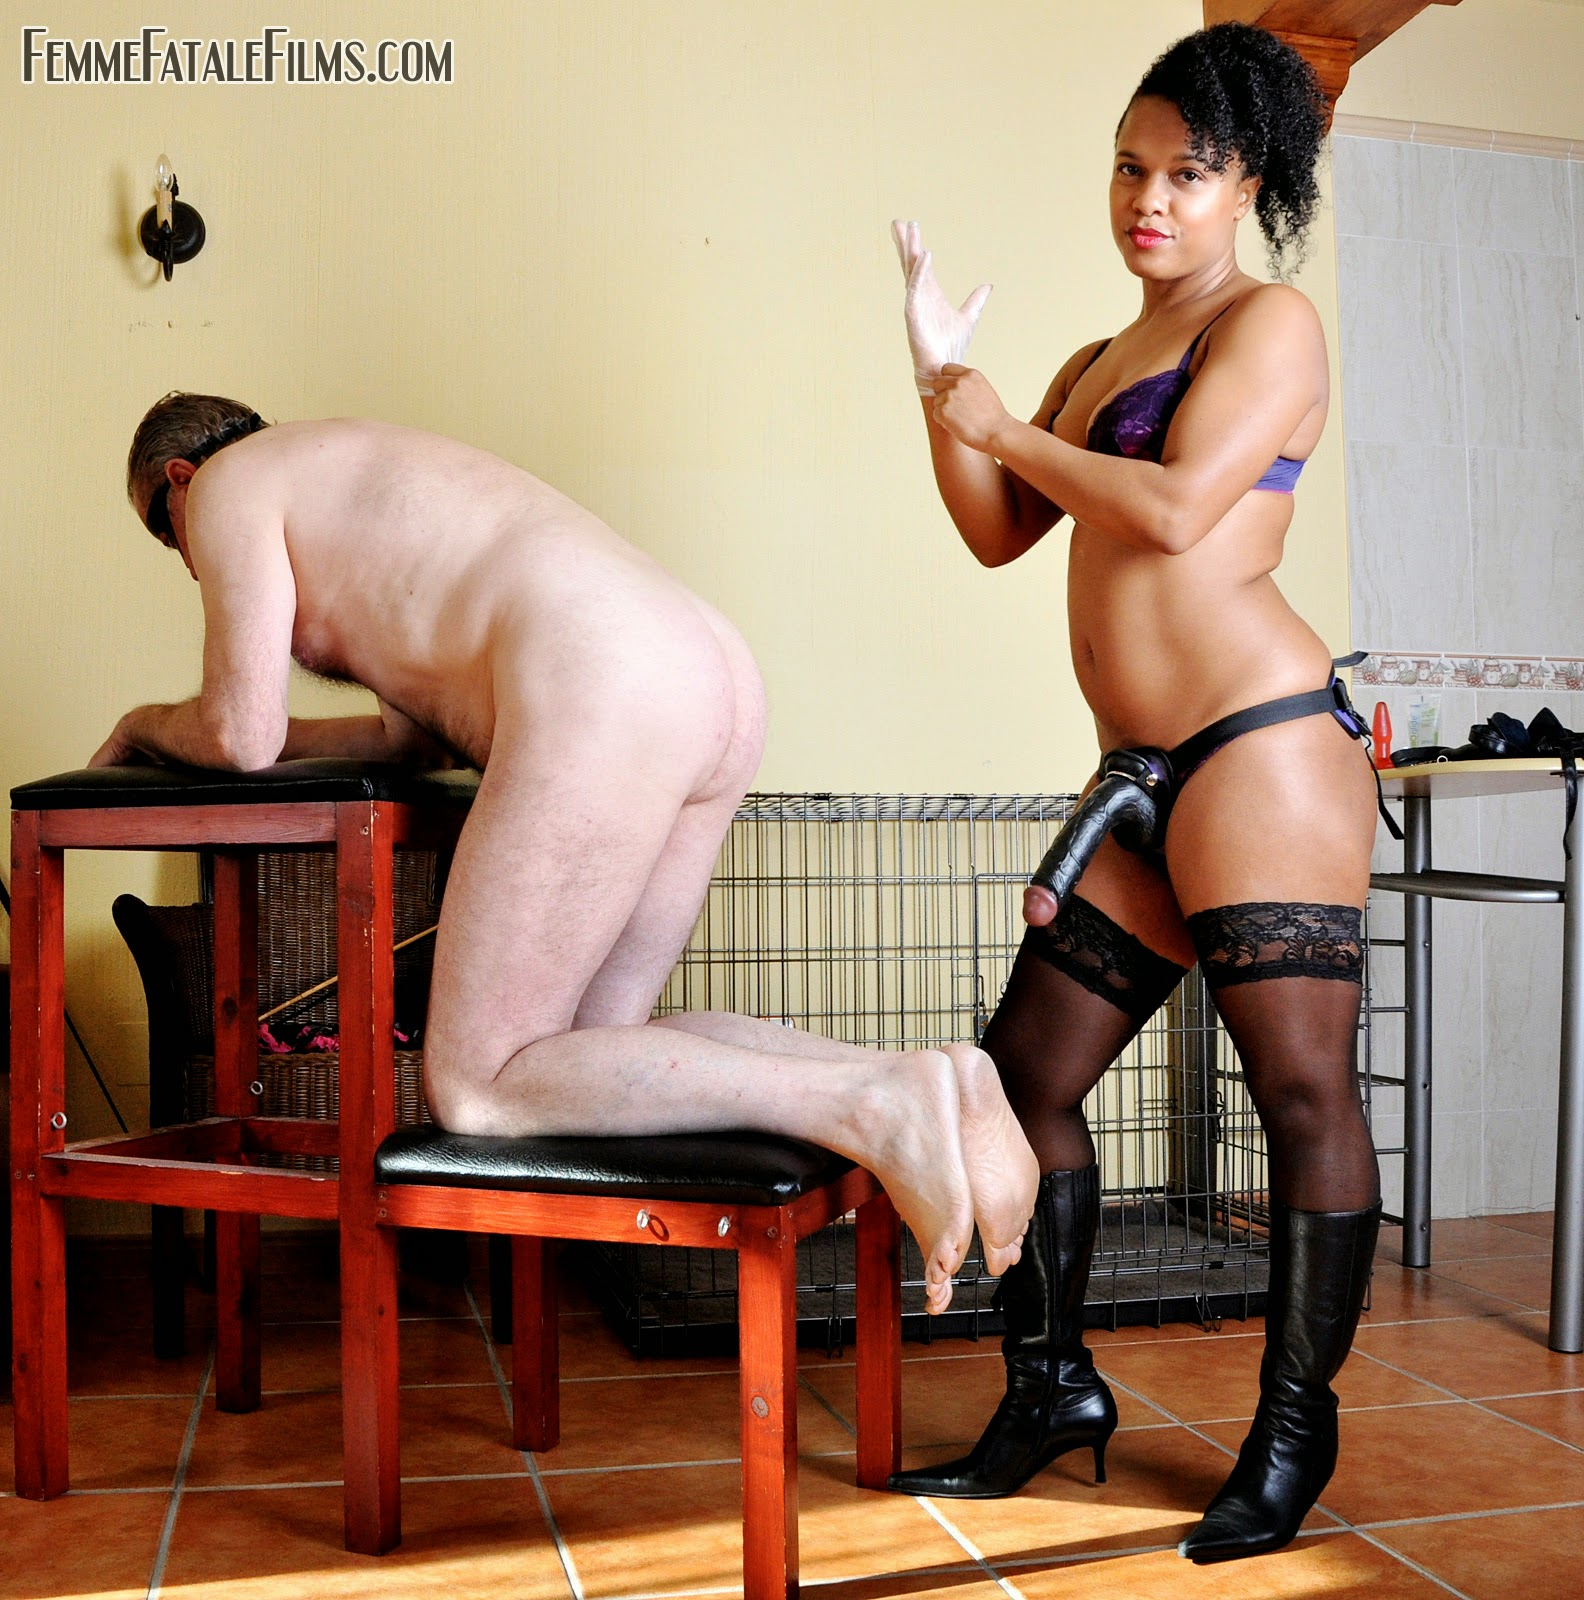 When mistress kiana meets rene62 - 2 part 2